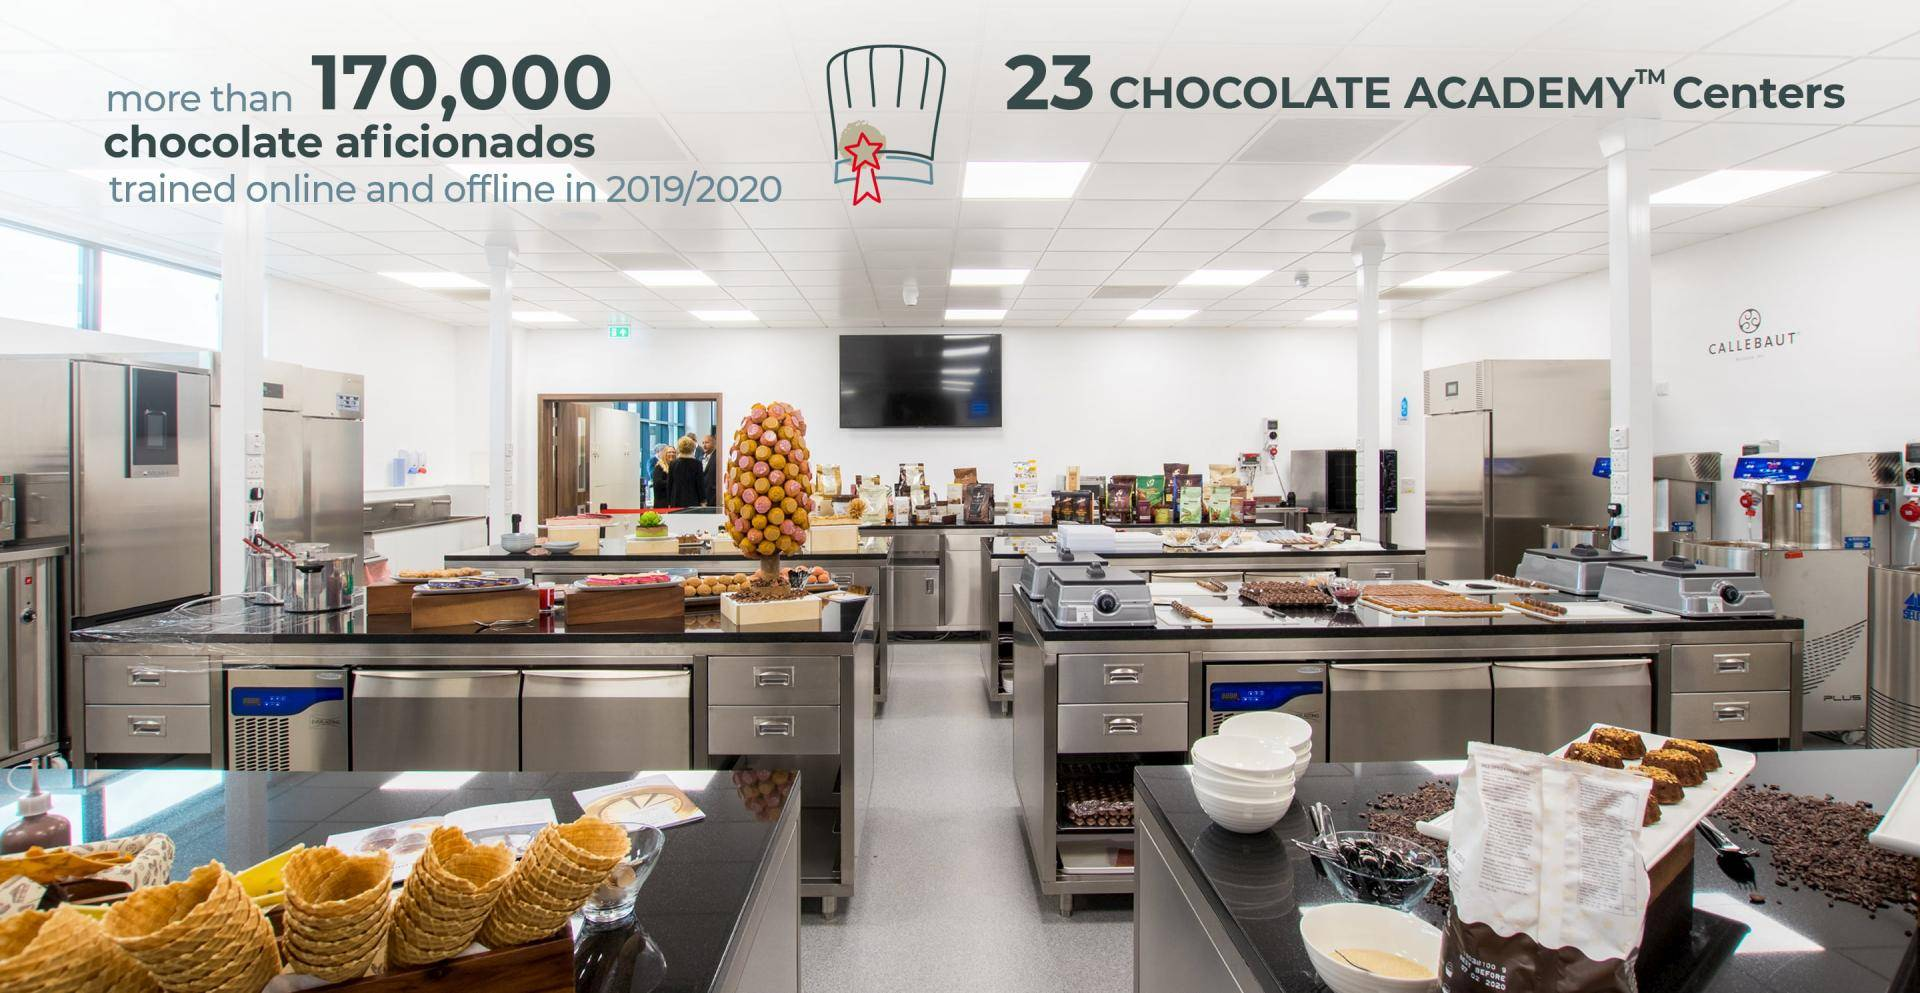 Chocolate Academies Fiscal Year 2019/20 Barry Callebaut